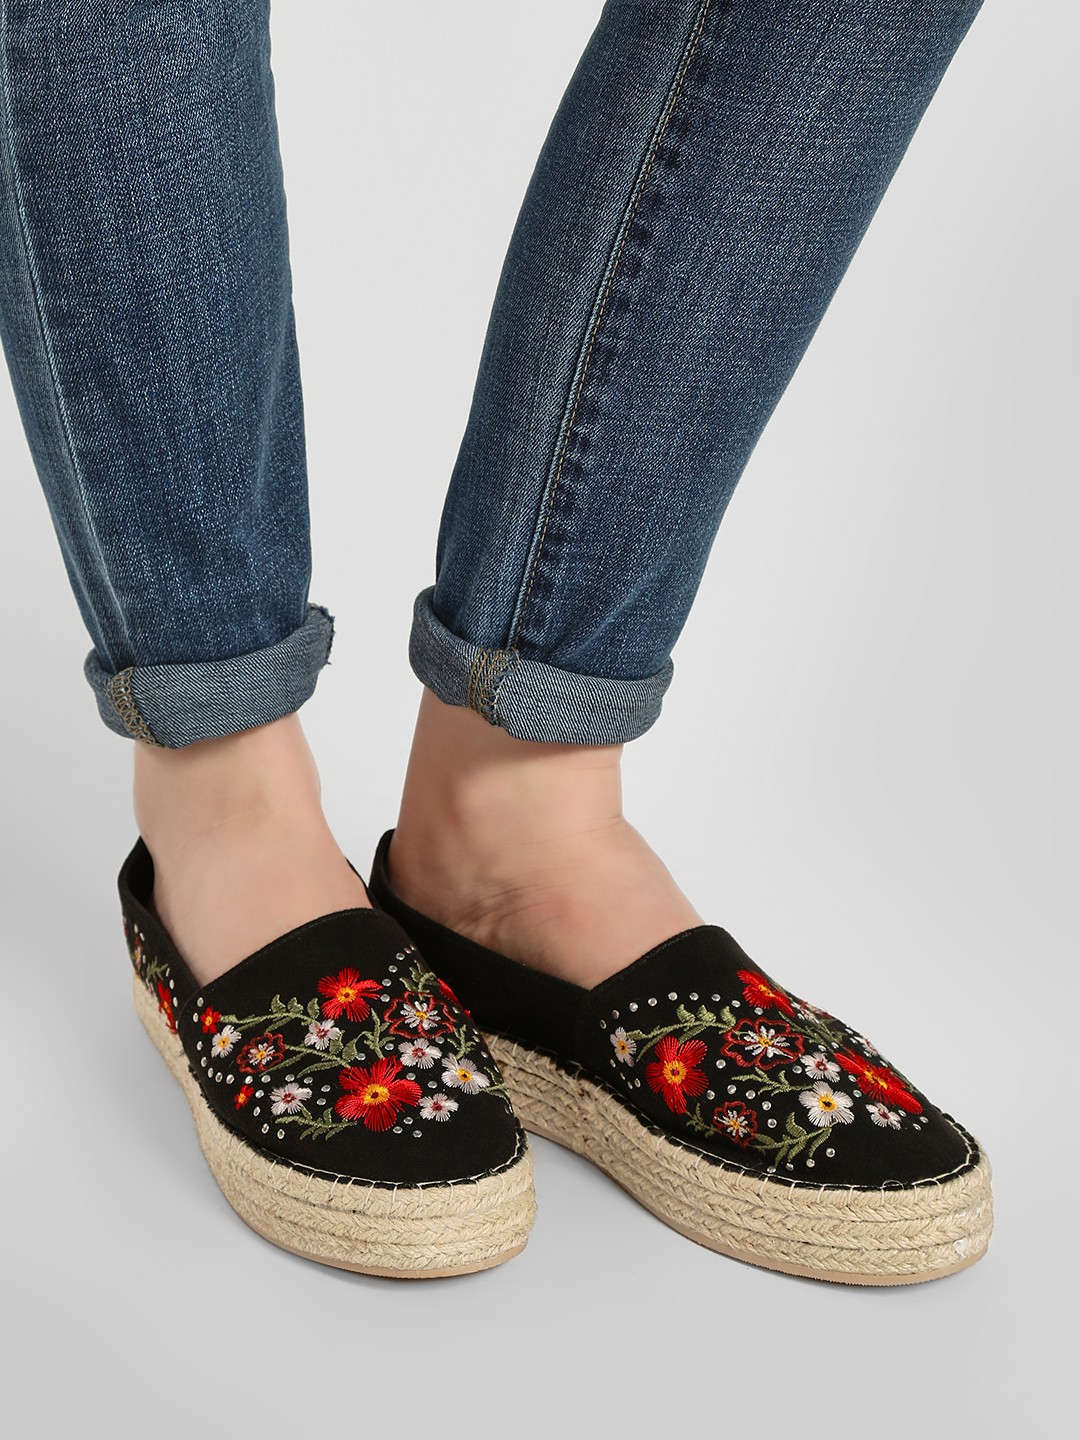 KOOVS Black Embroidered Stacked Espadrilles 1